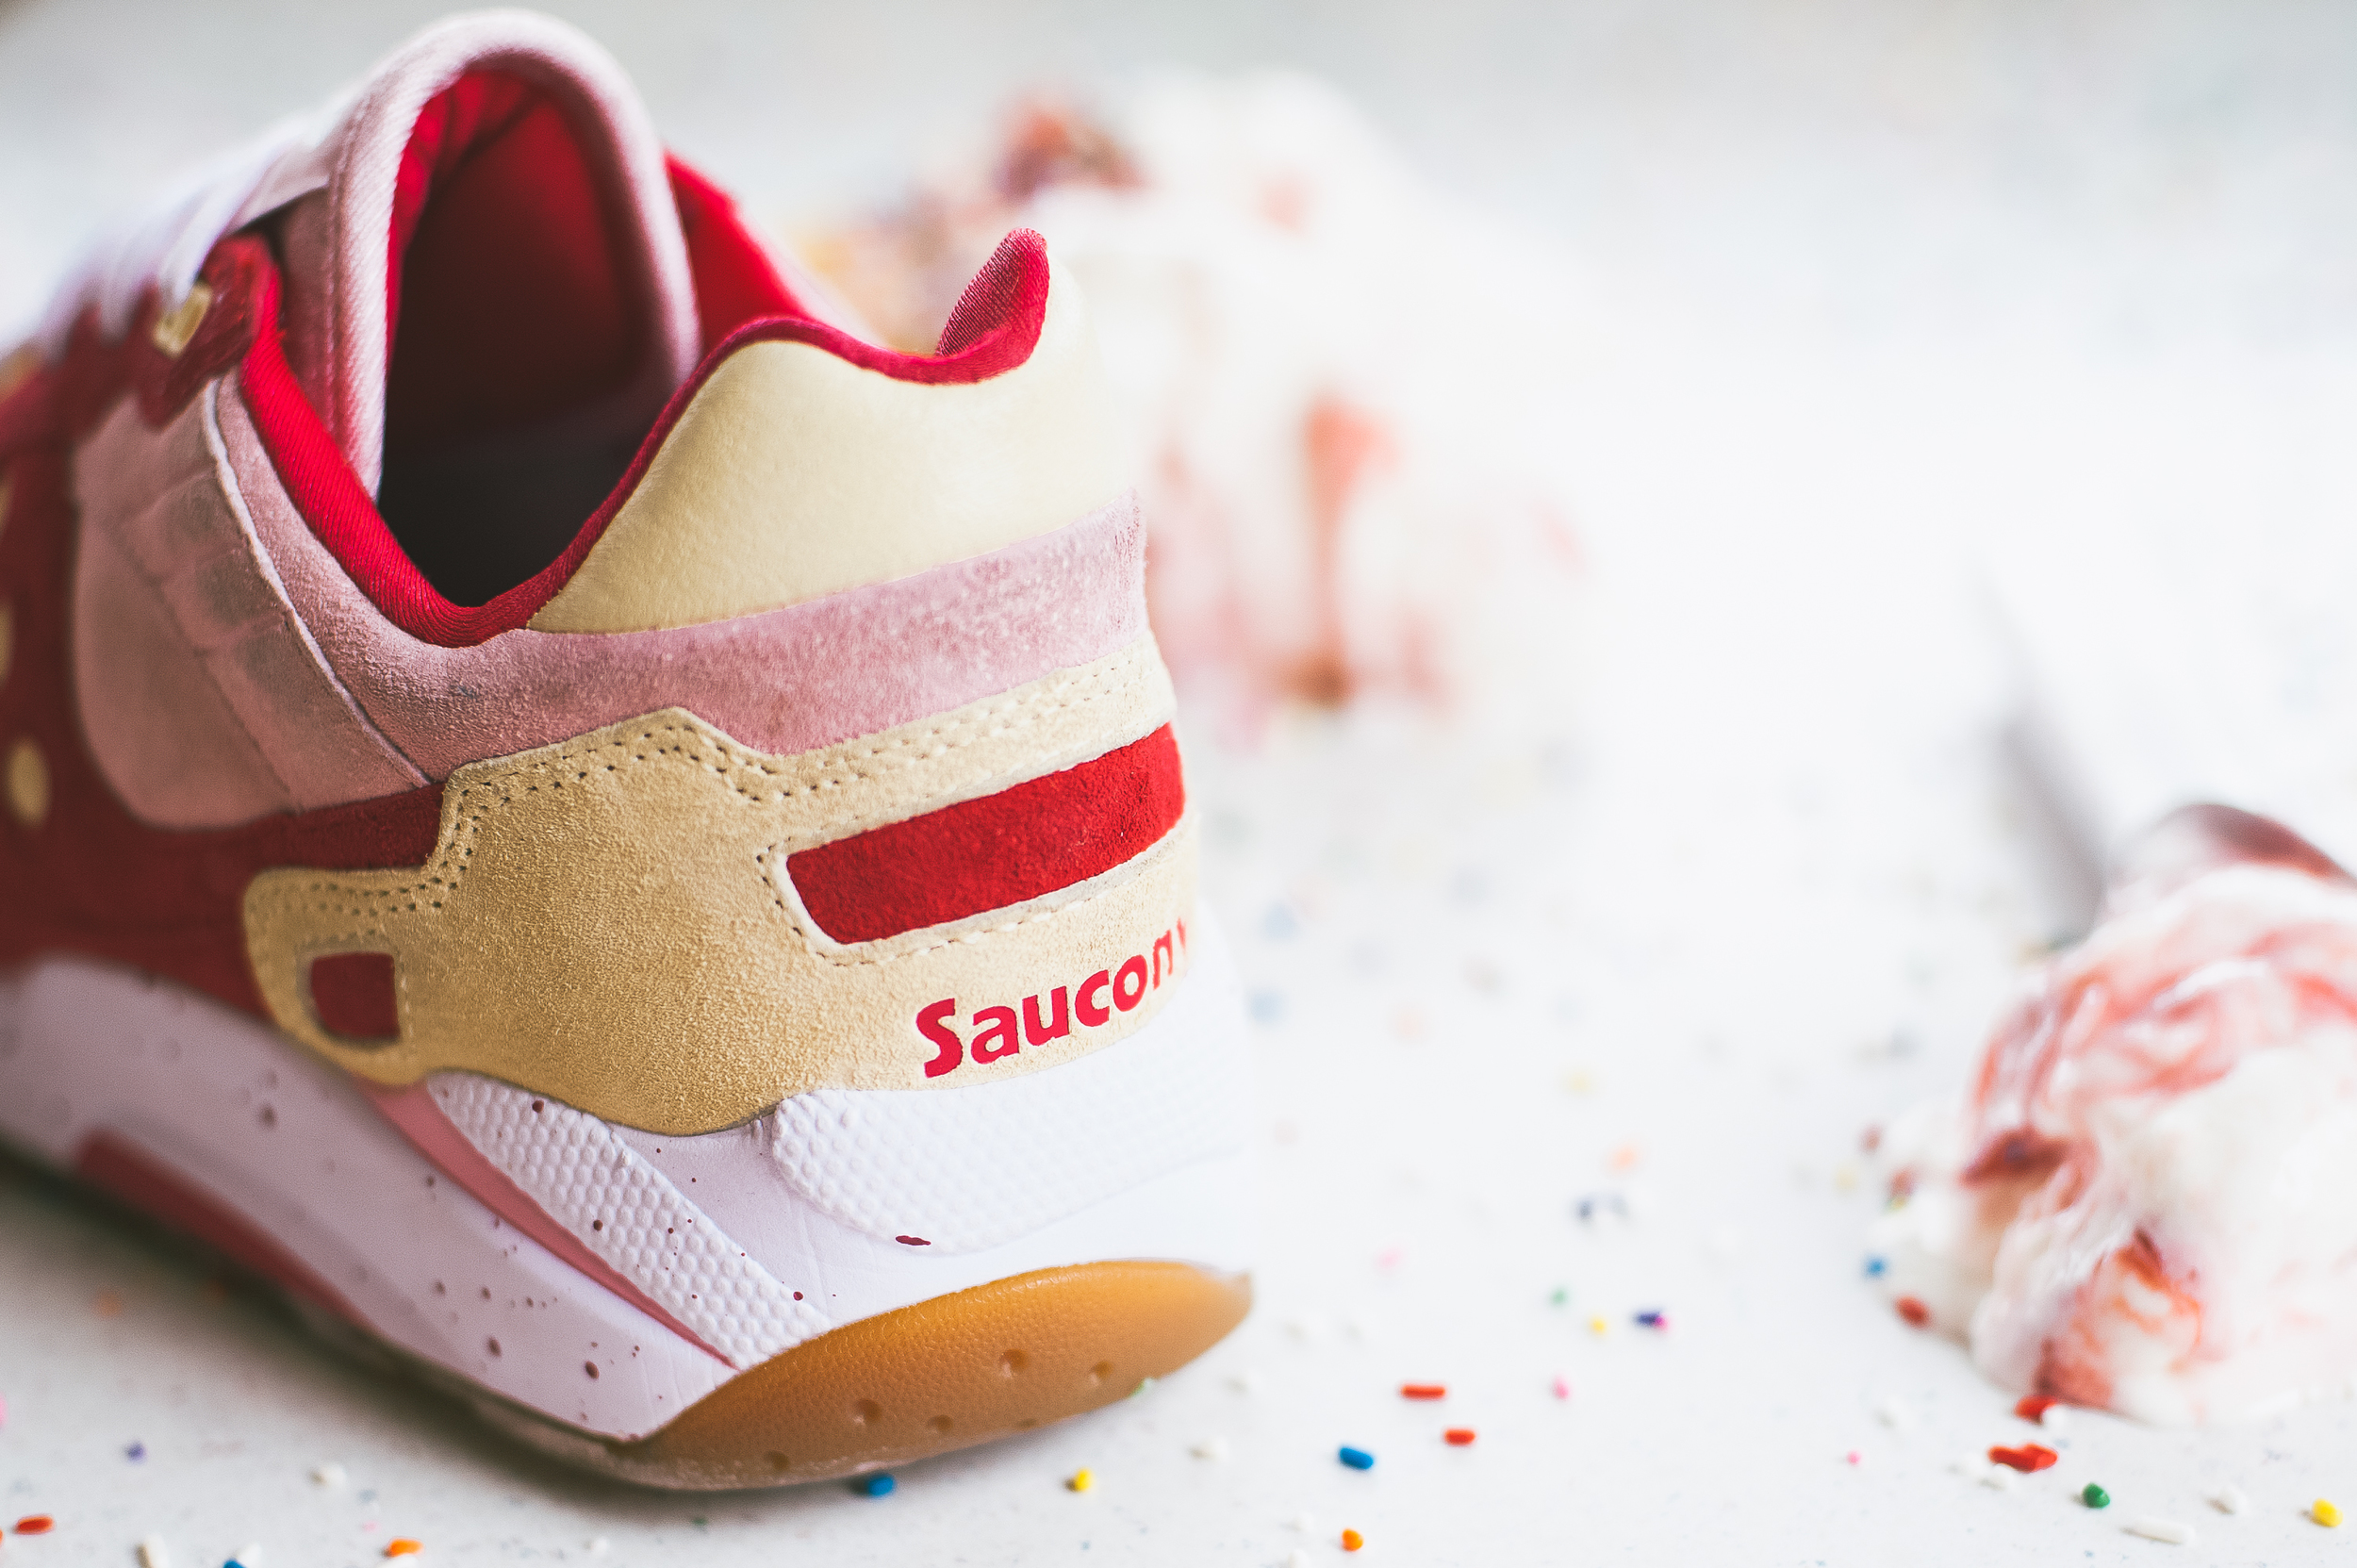 Saucony Originals Scoops Pack Dustin Guidry Photography 38.jpg